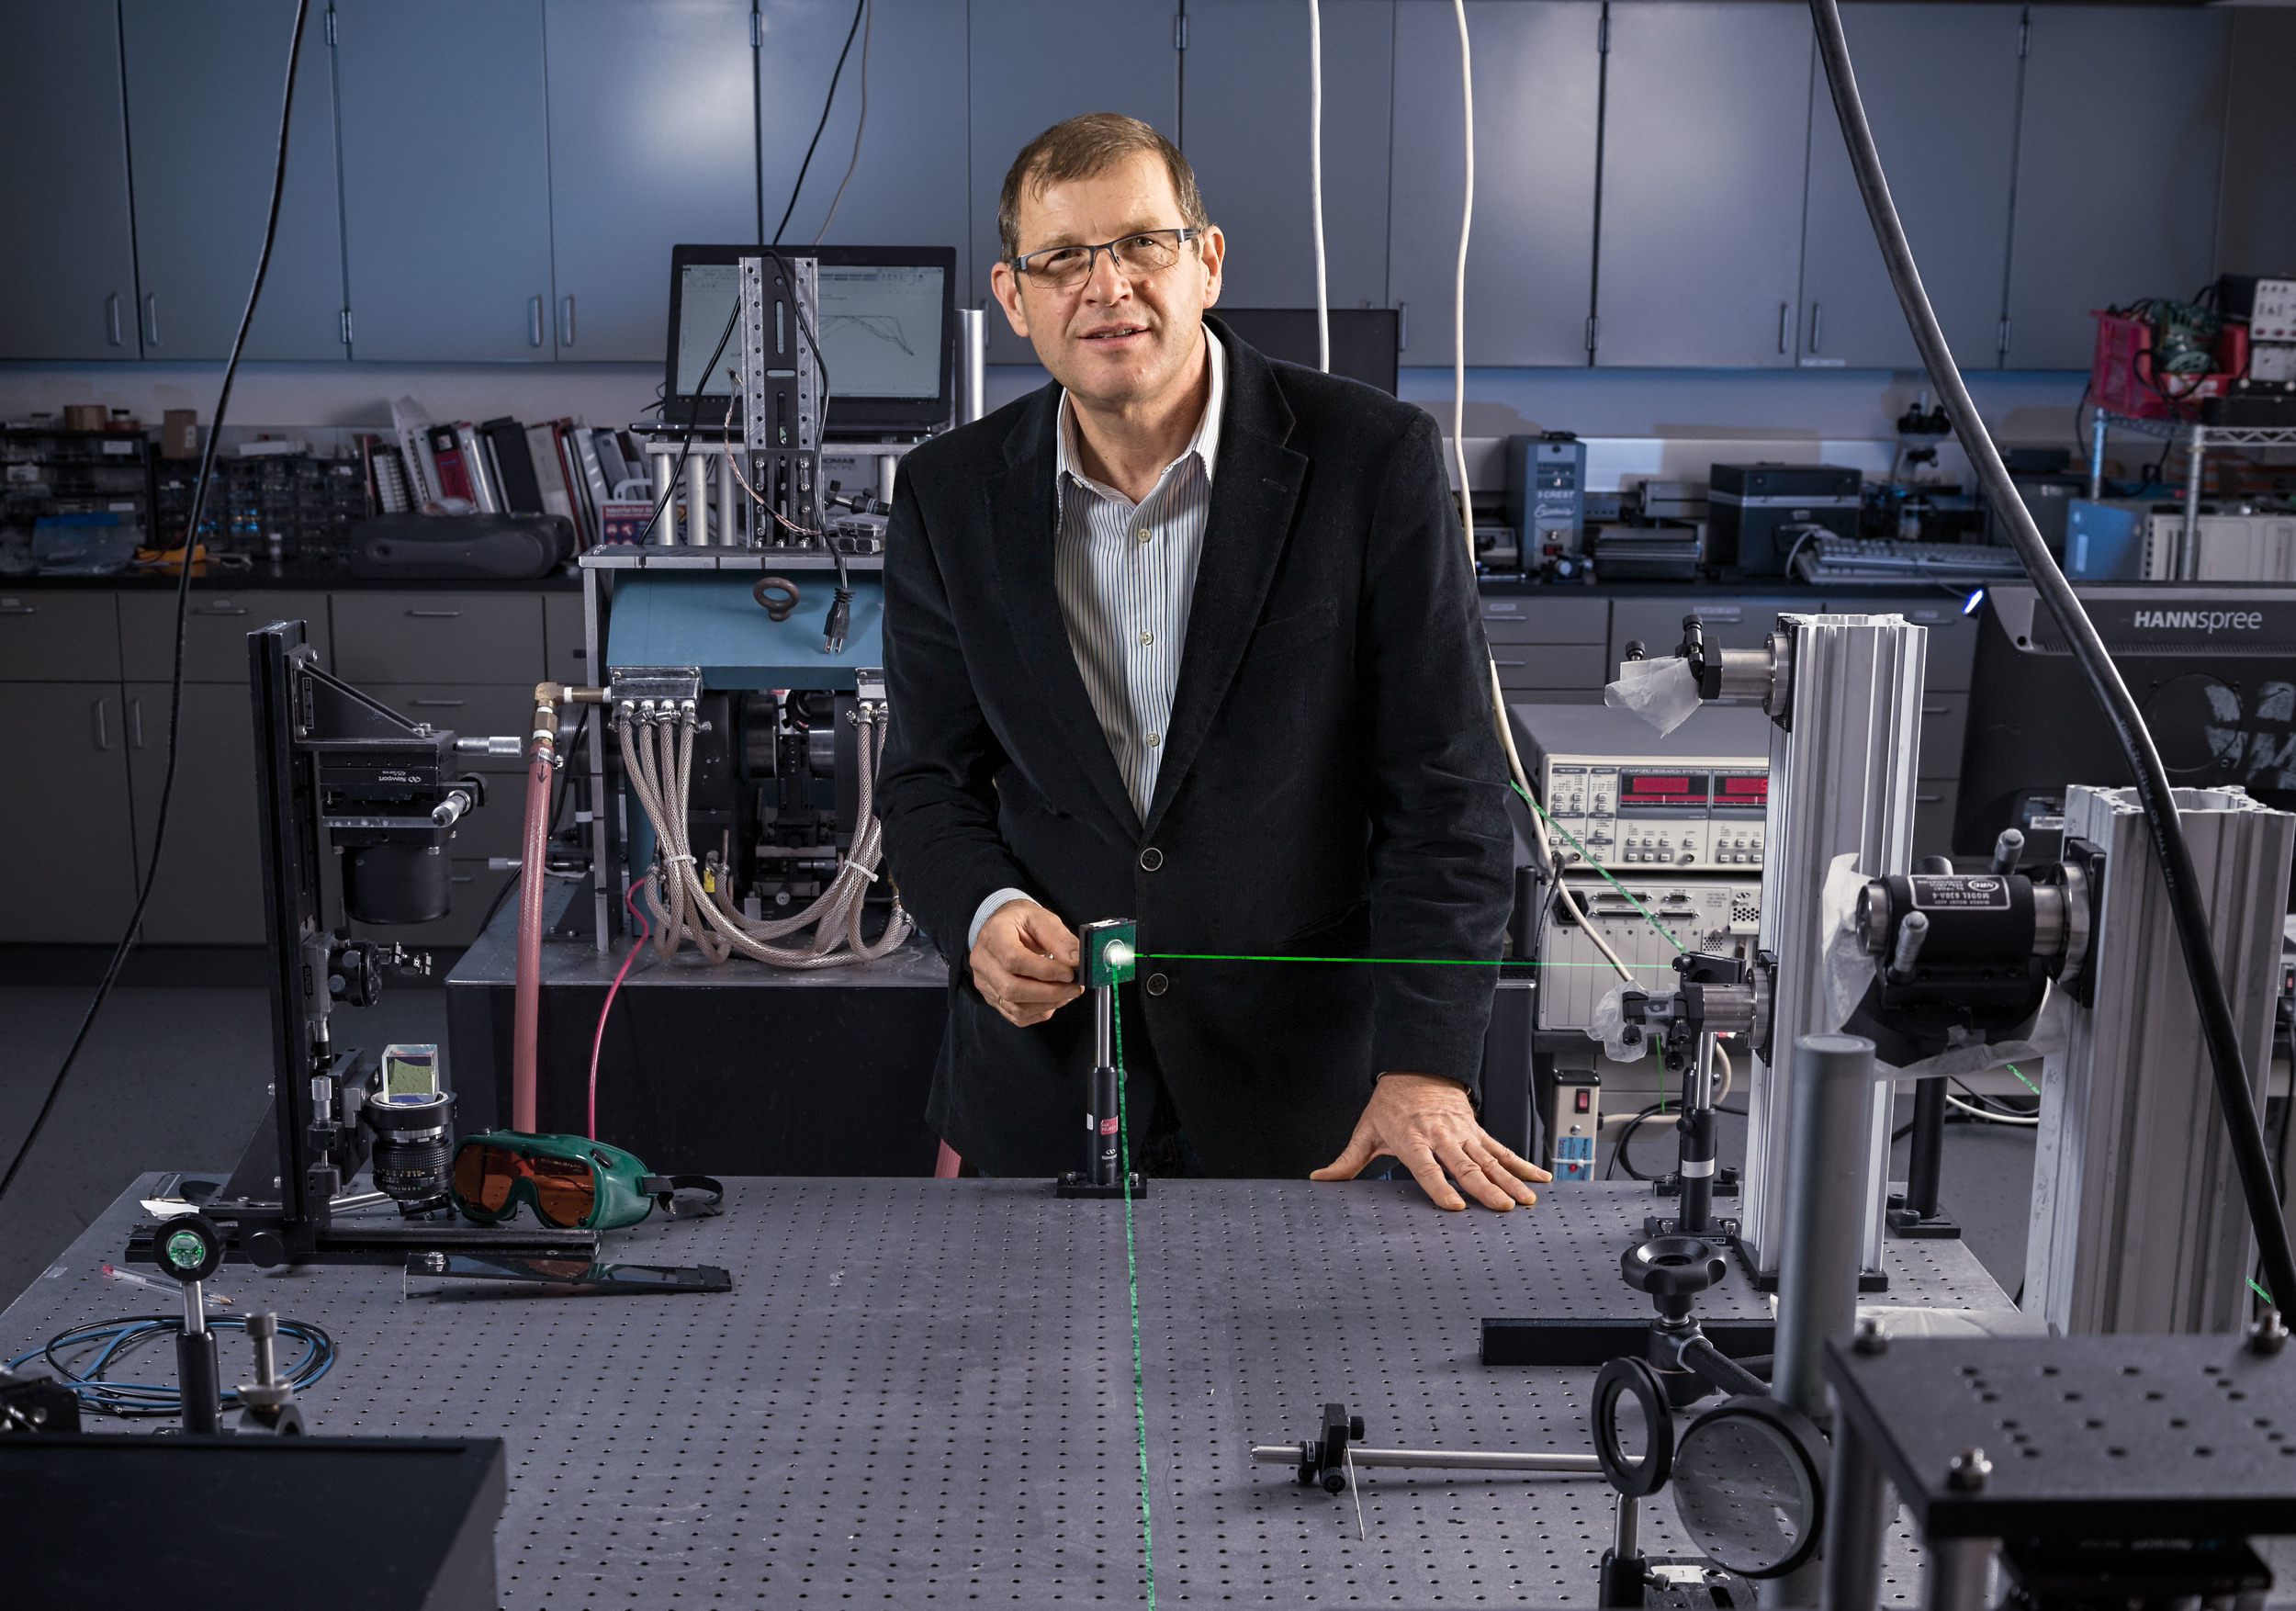 Dr. C. Zbigniew, Professor of Physics, University of Colorado at Colorado Springs In the UCCS laser lab. Photo by R.W. Firth